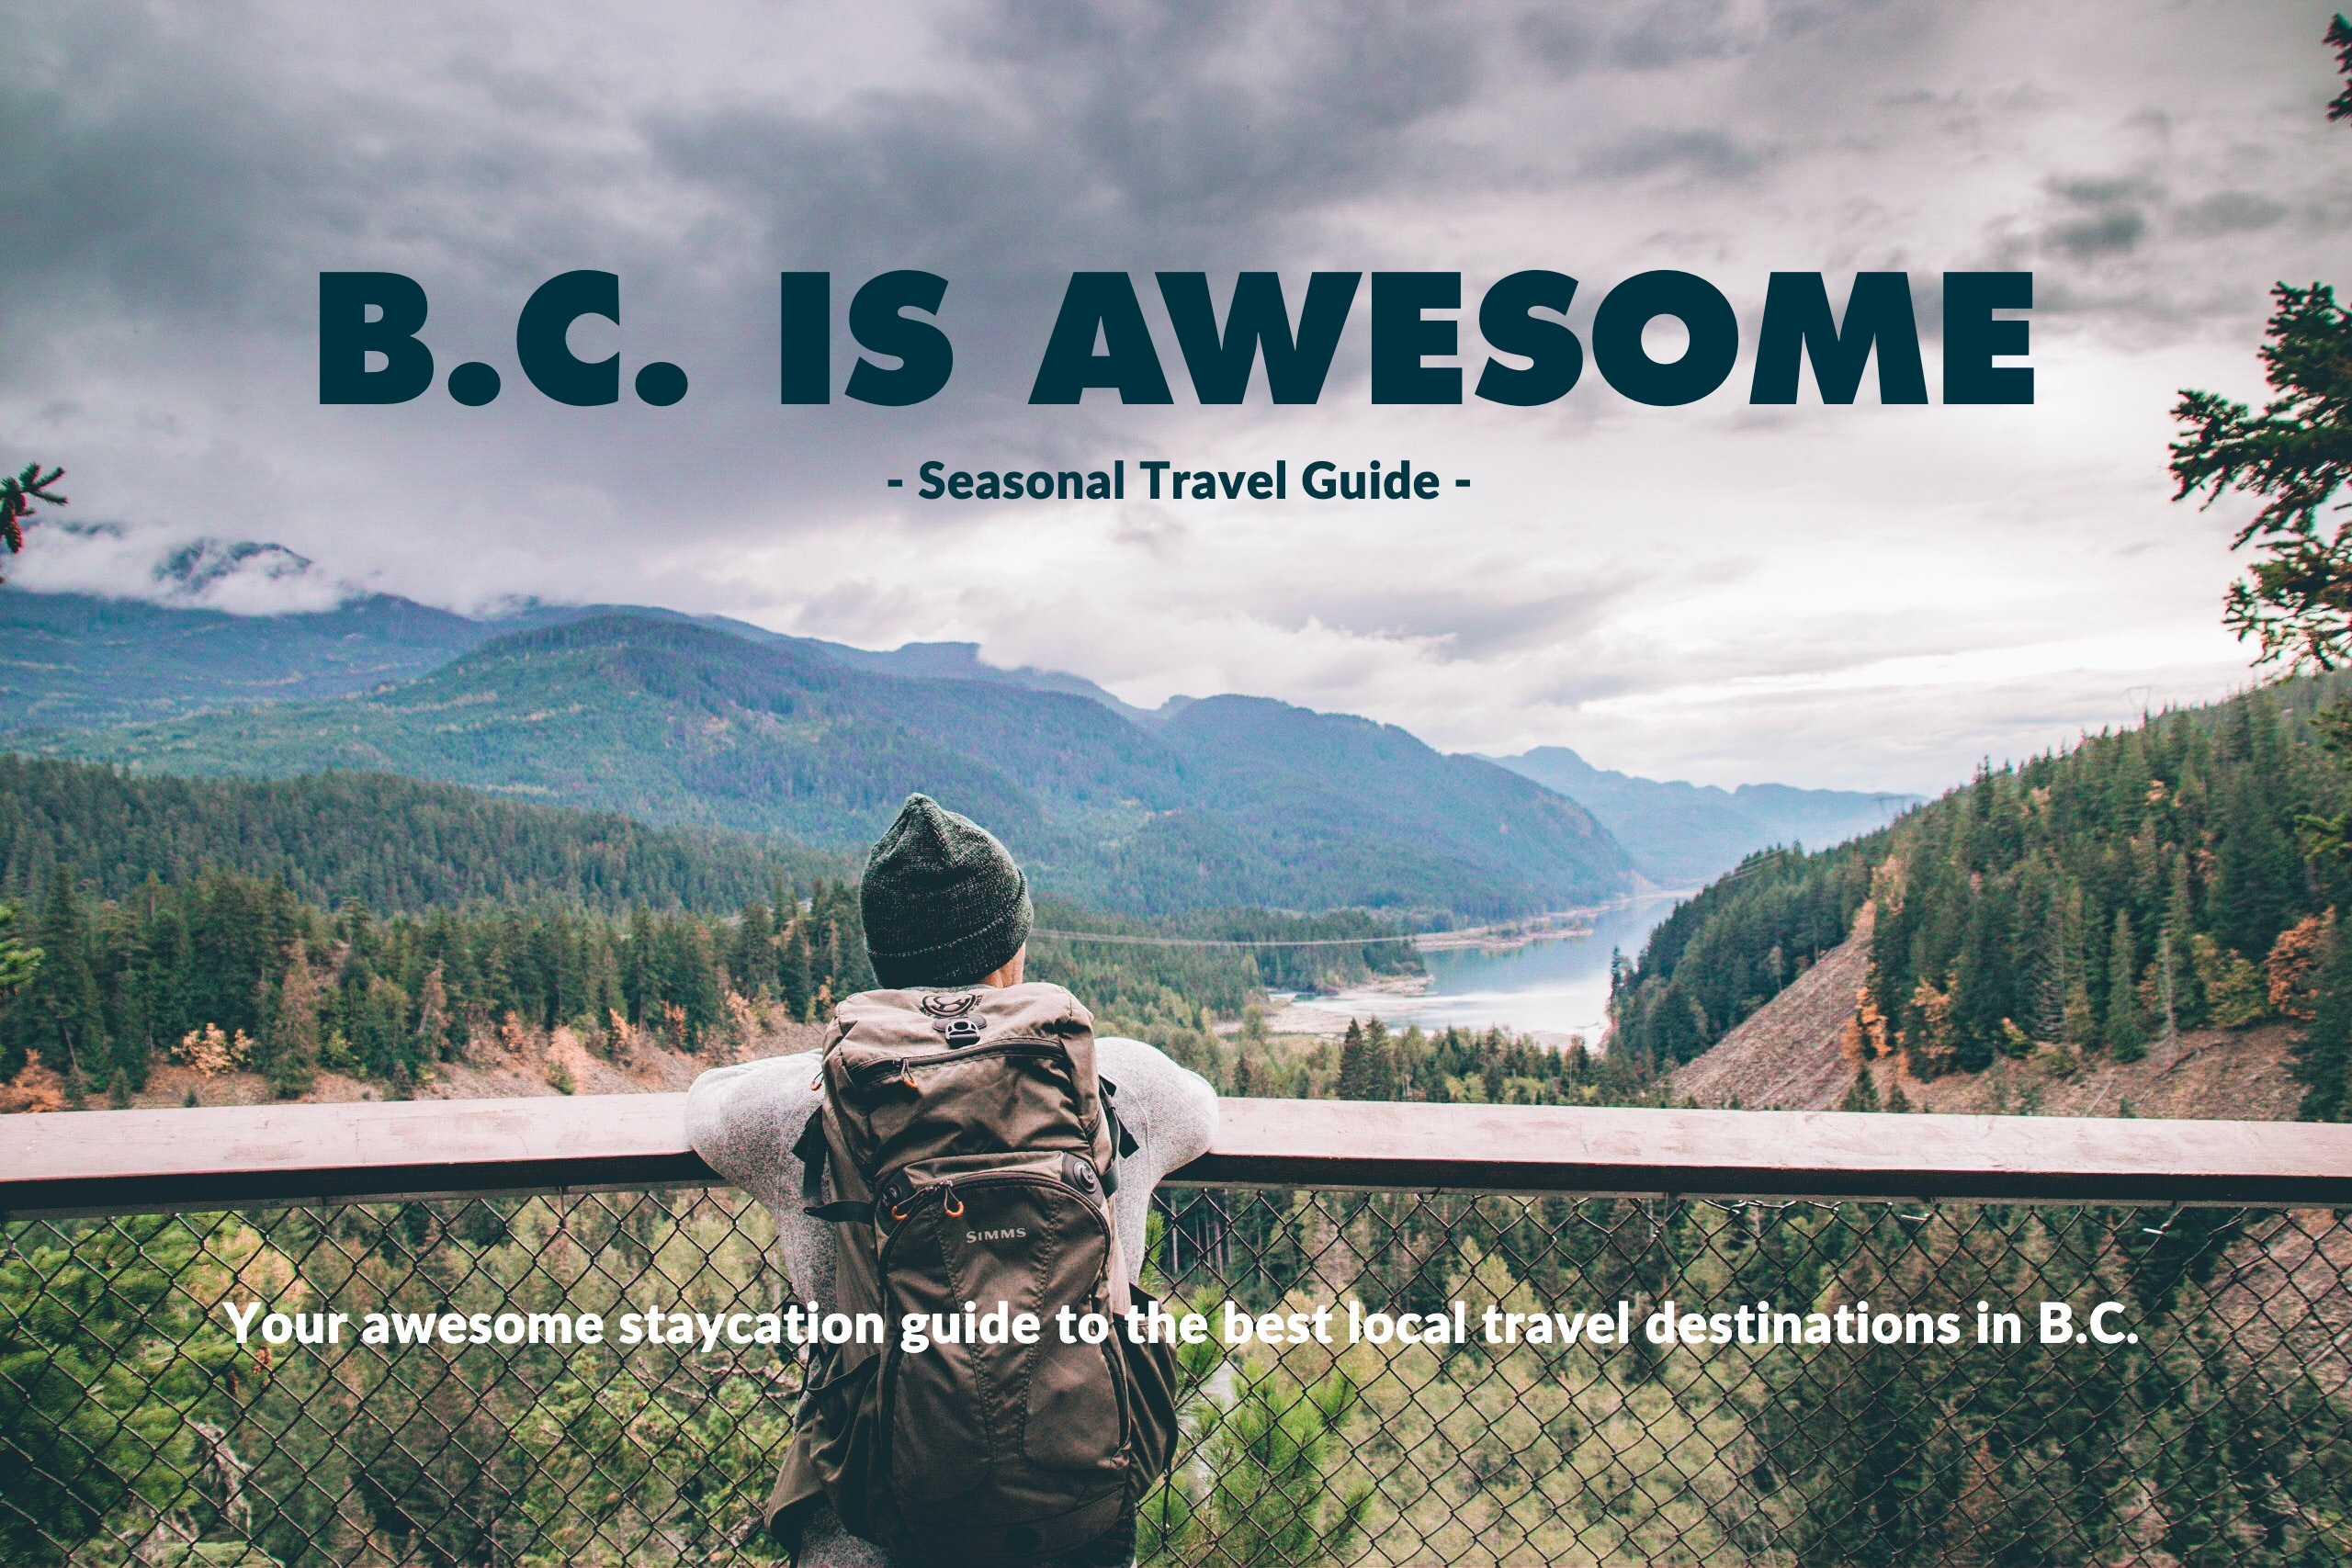 B.C. IS AWESOME FALL WINTER